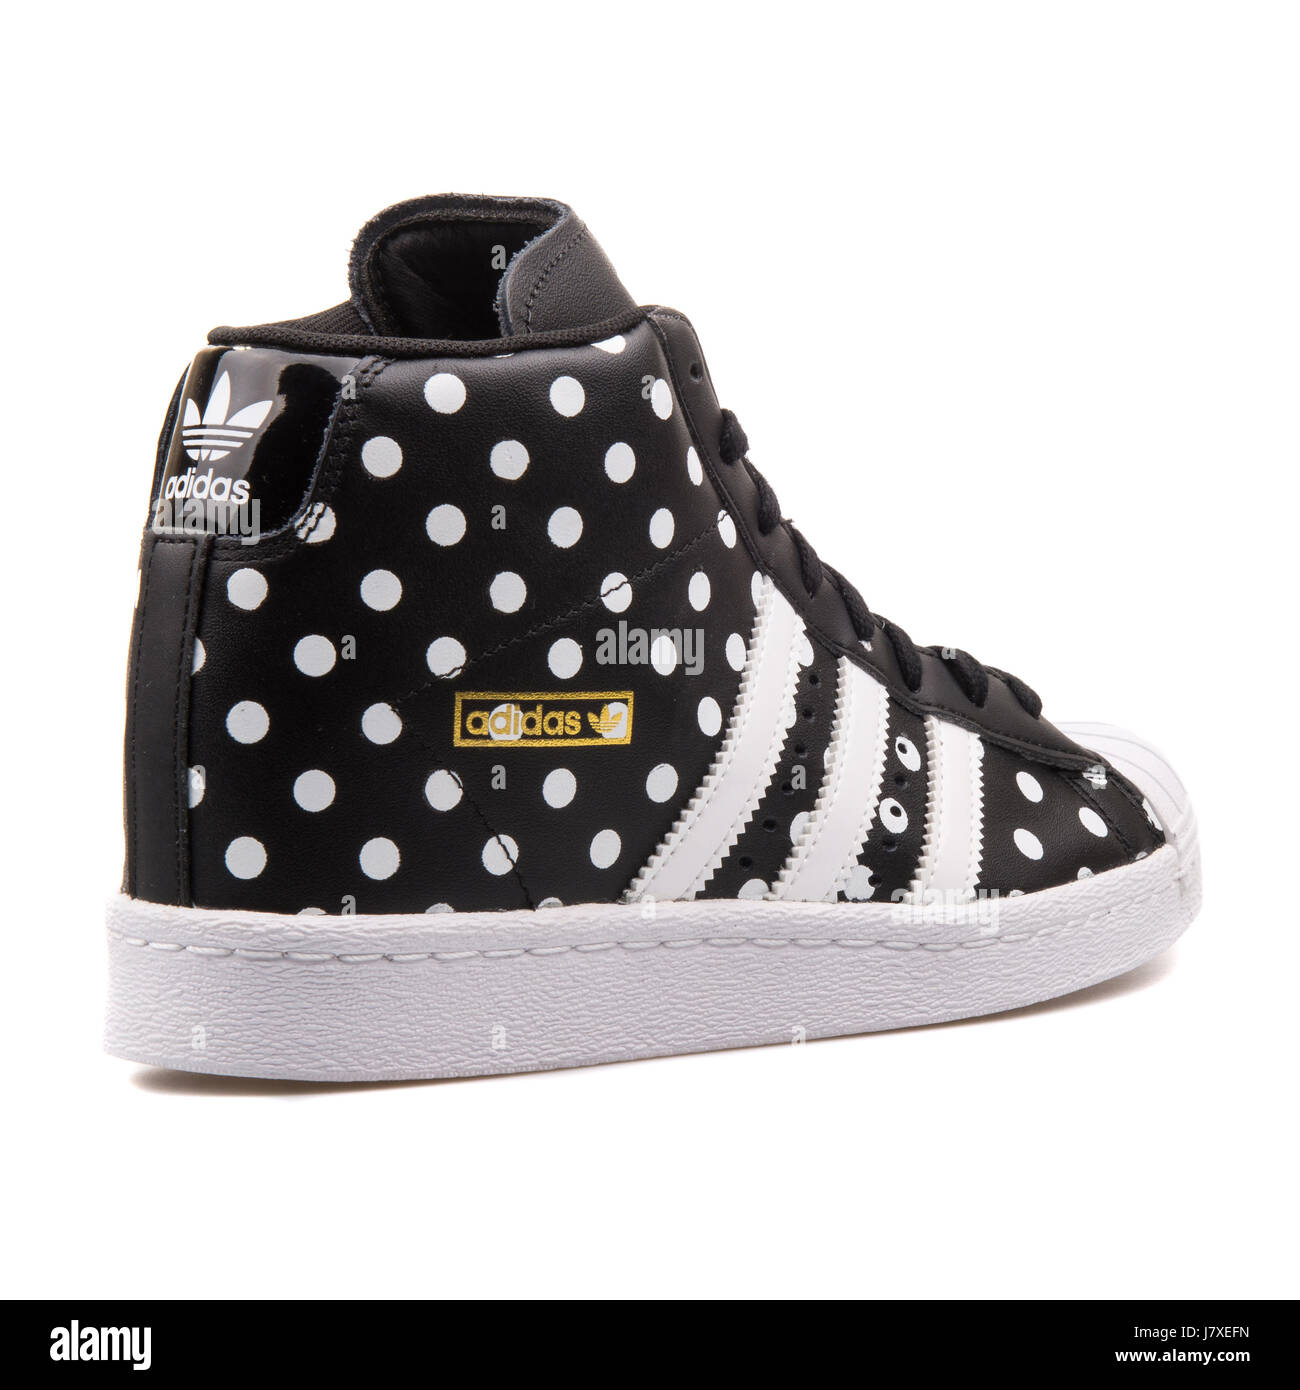 daad4db2 Adidas Superstar UP W Women's Black With White Dots Sneakers - S81377 -  Stock Image